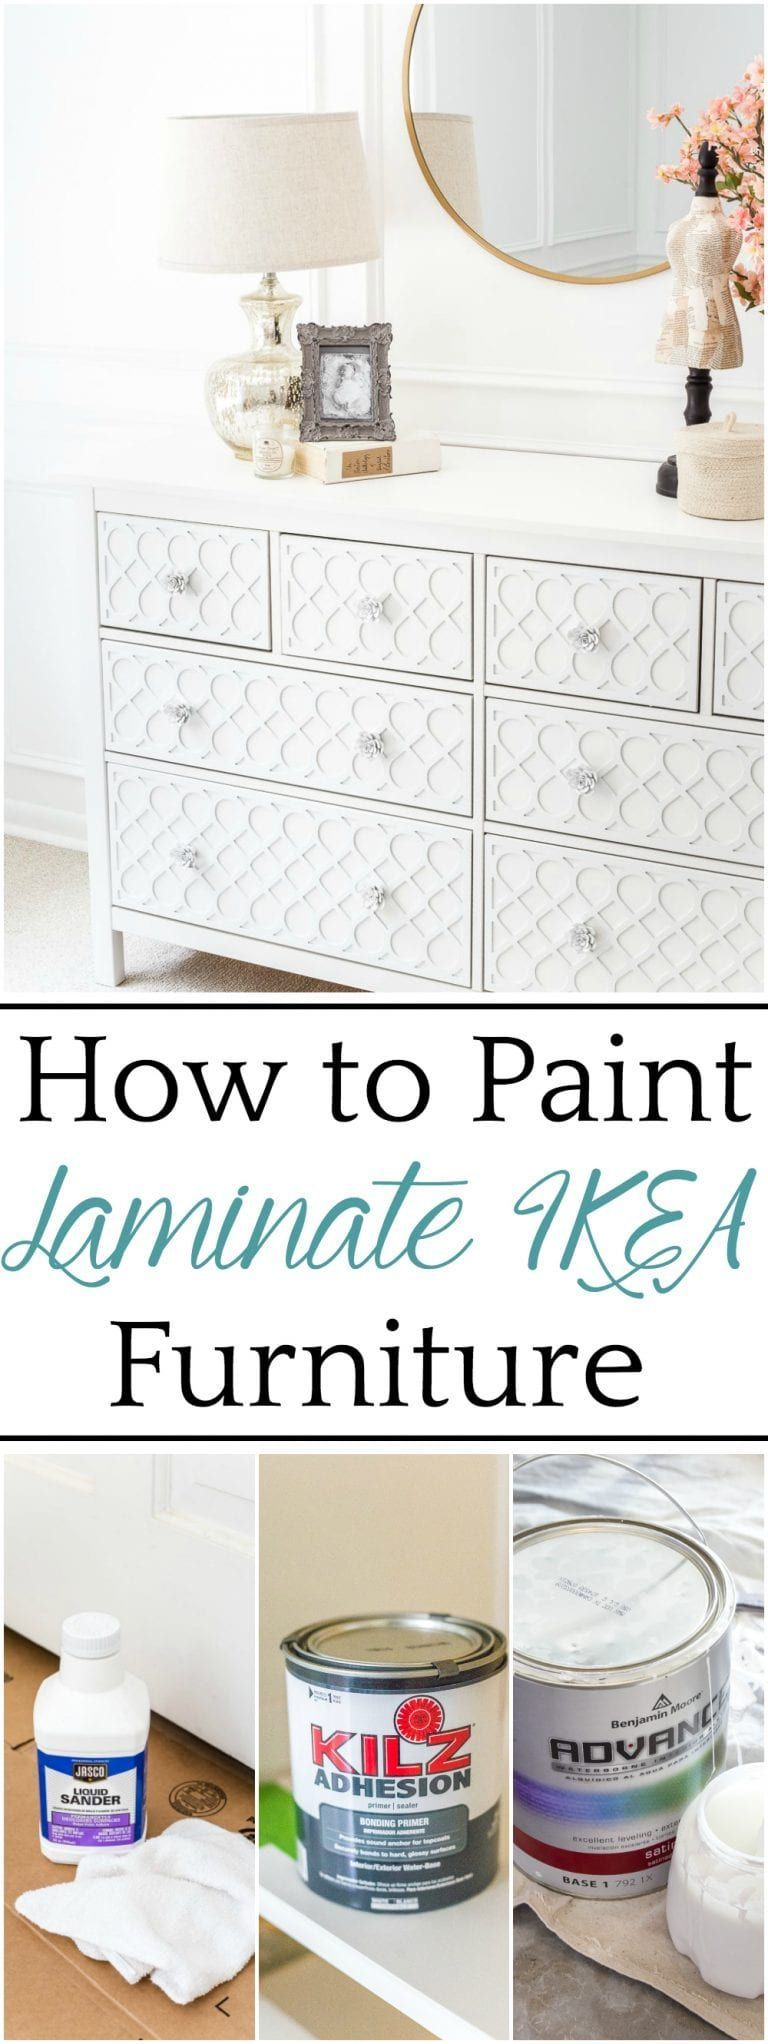 The Trick to Paint Laminate IKEA Furniture - Bless'er House